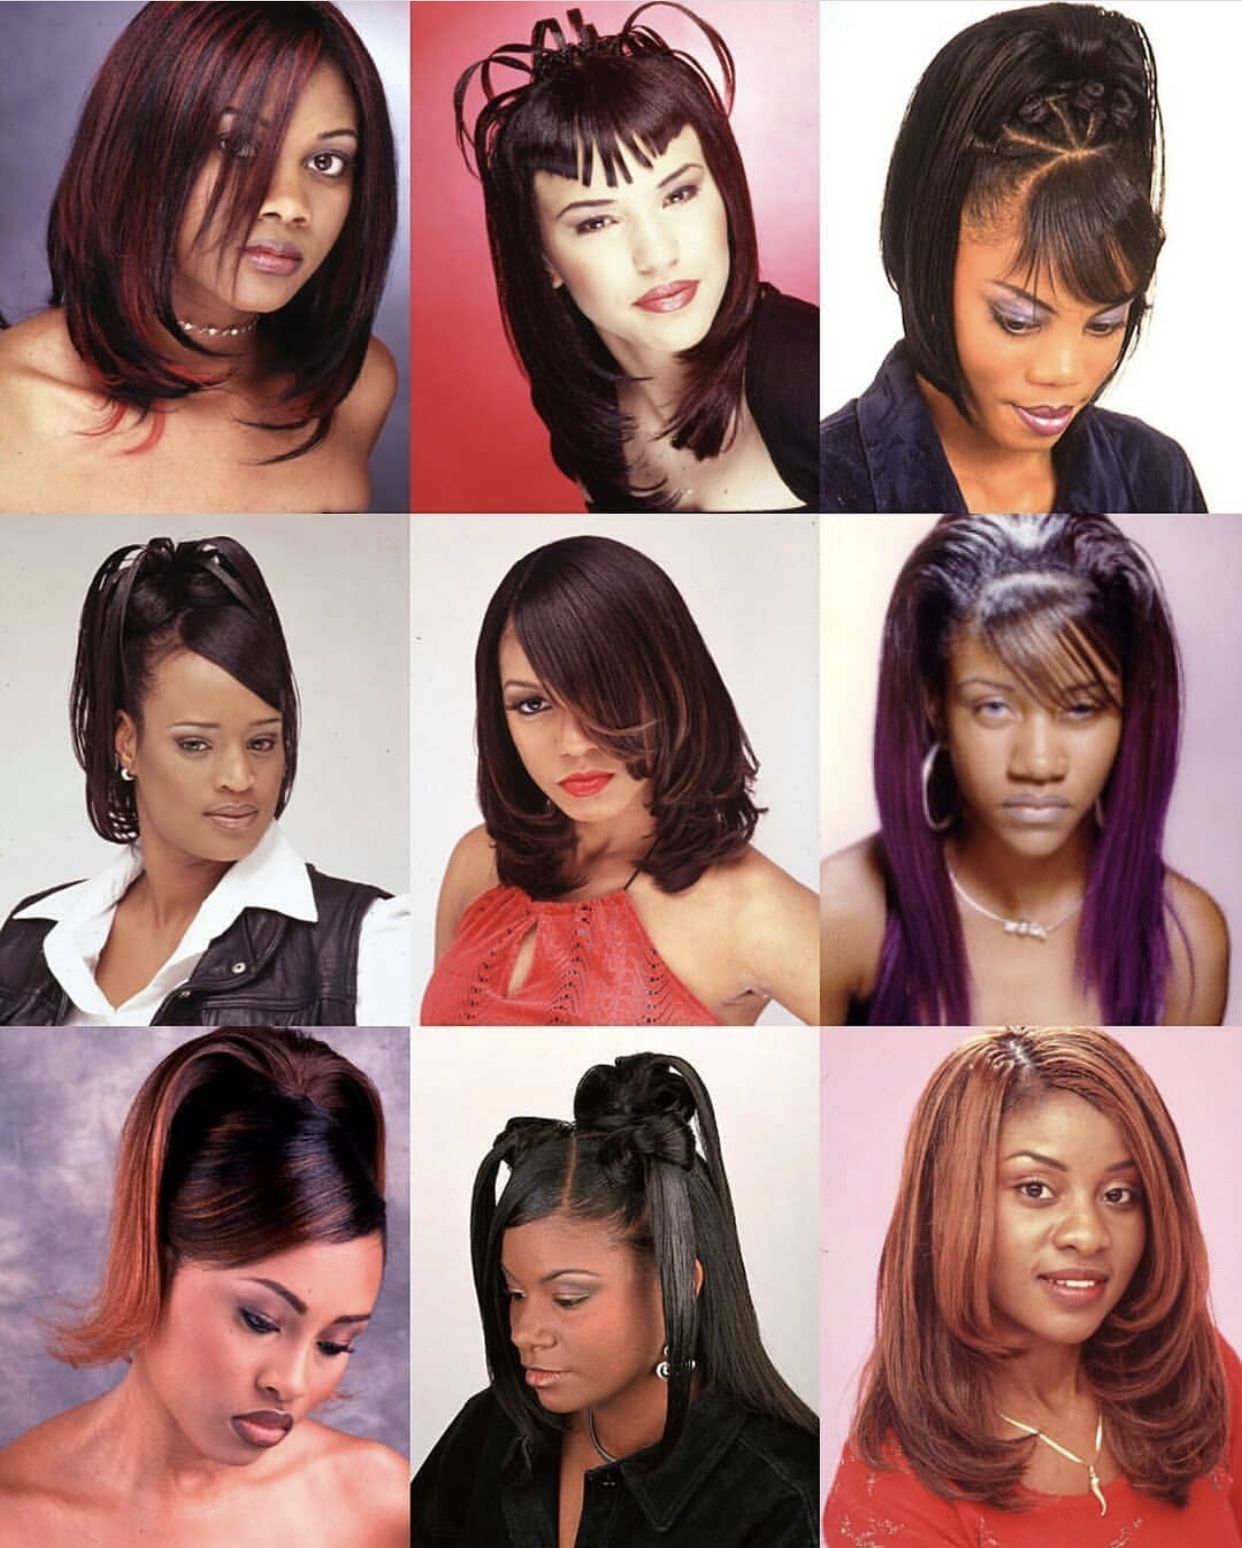 Black Hairstyles In The 90s Fancy 2000s Hairstyles Black Hair 90s Black Women Hairstyles